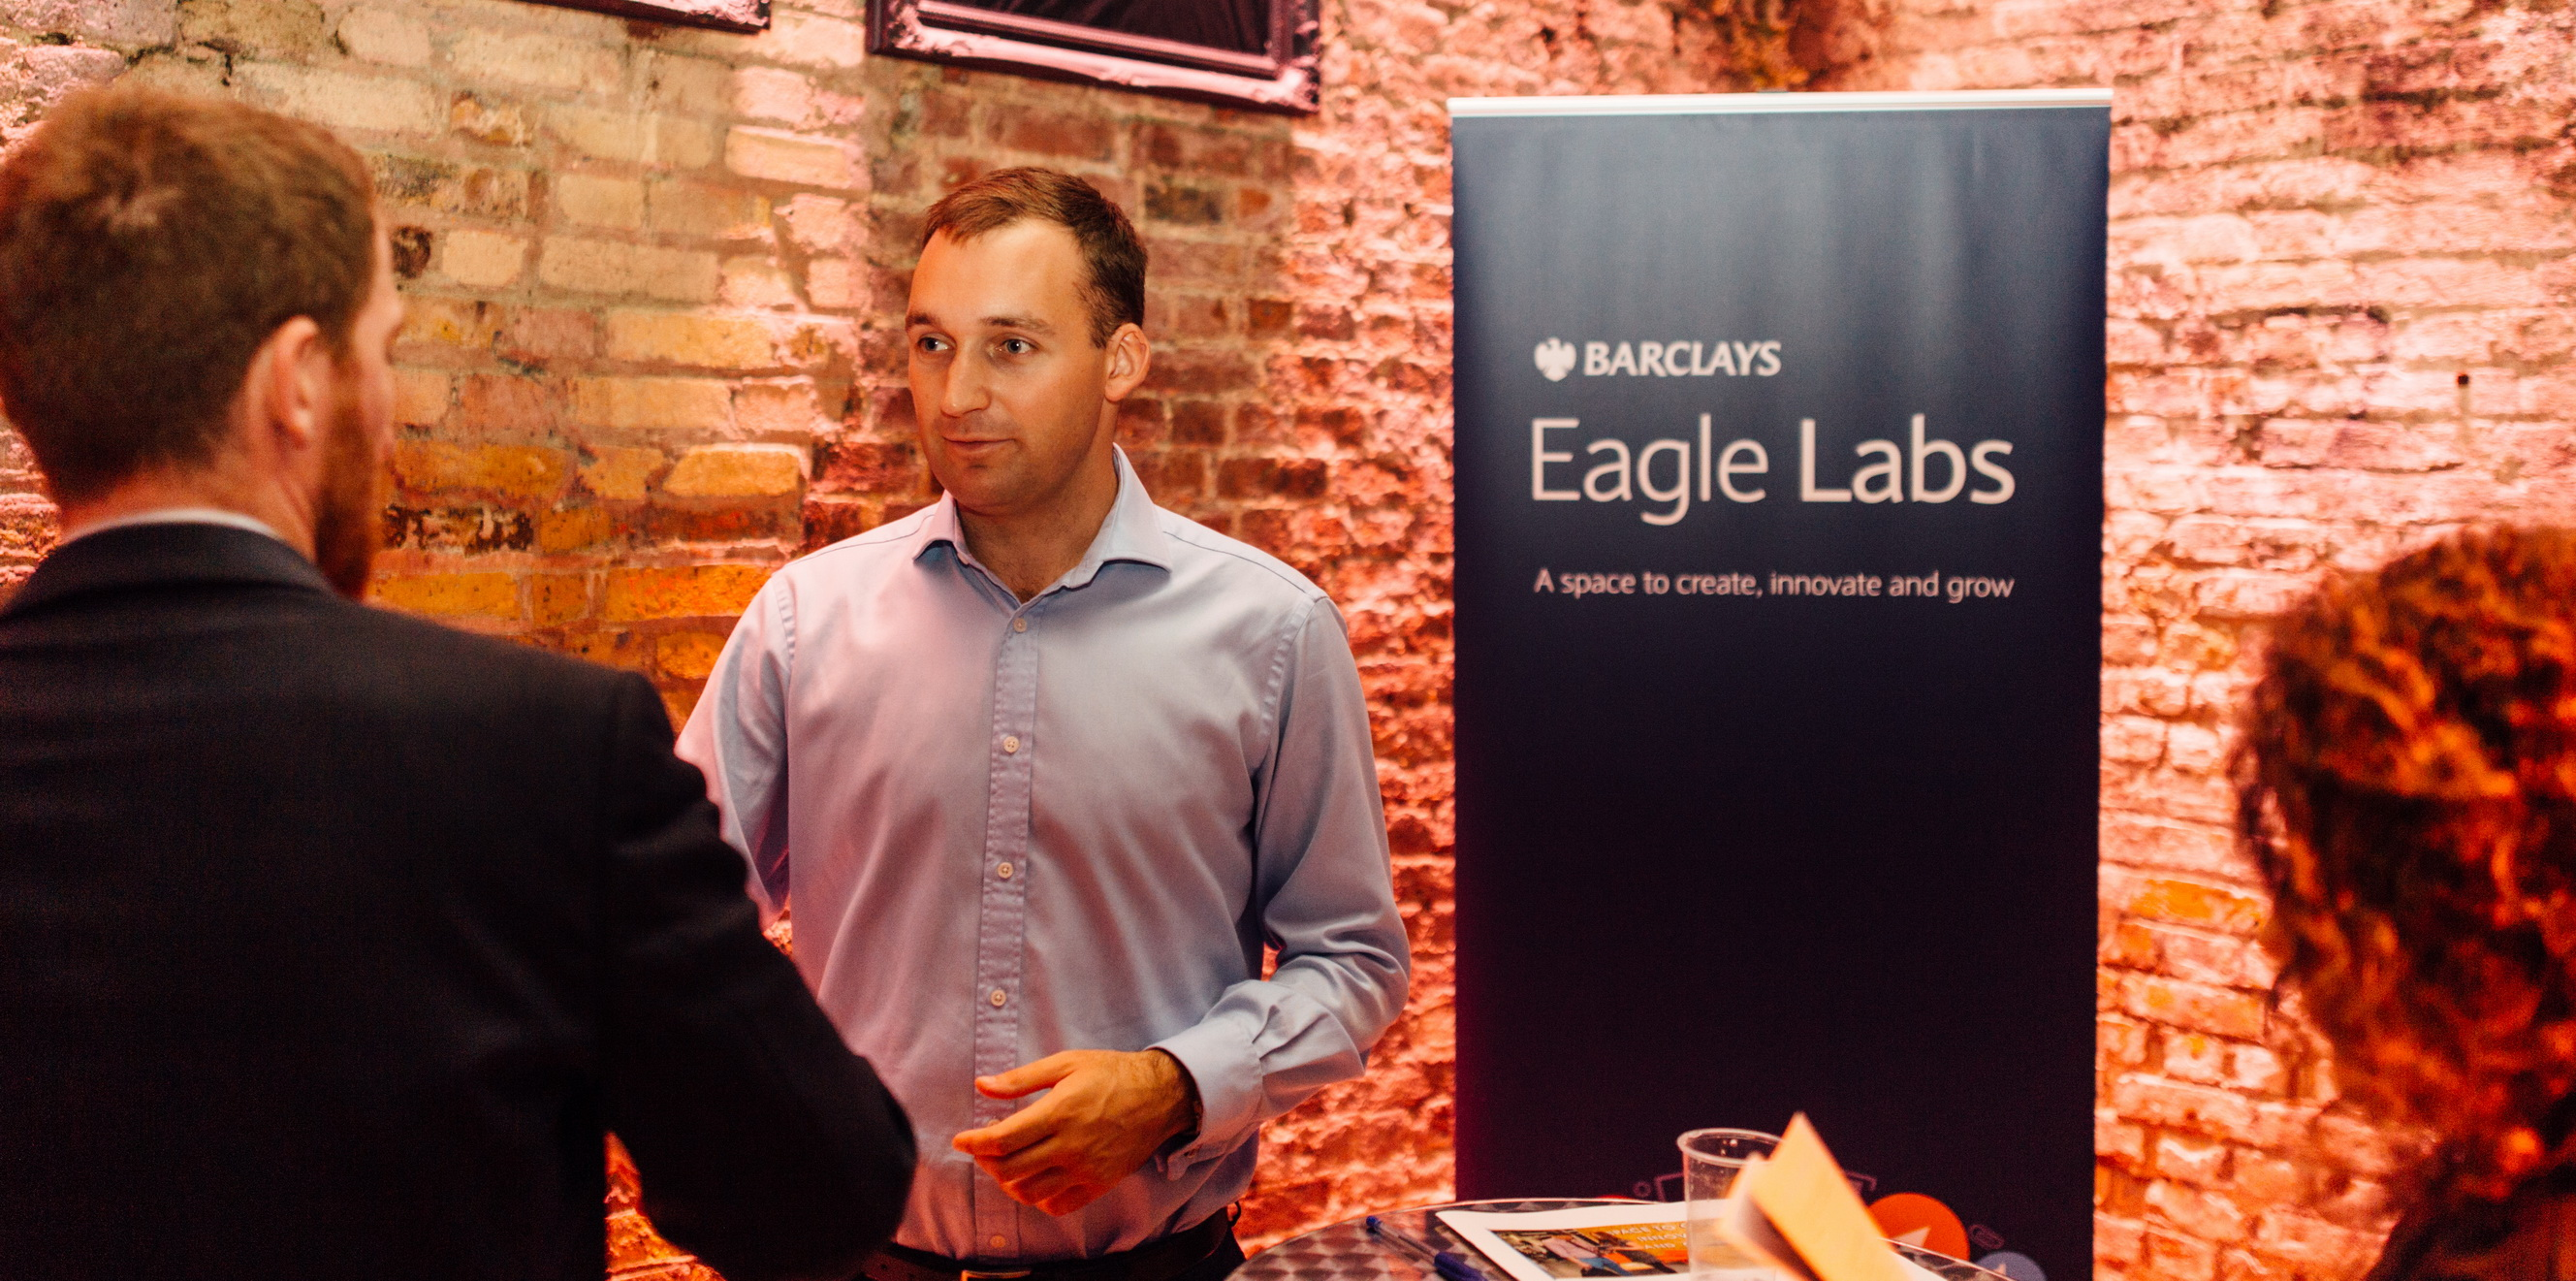 Barclays Eagle Labs Fuelling the UK's Digital Economy